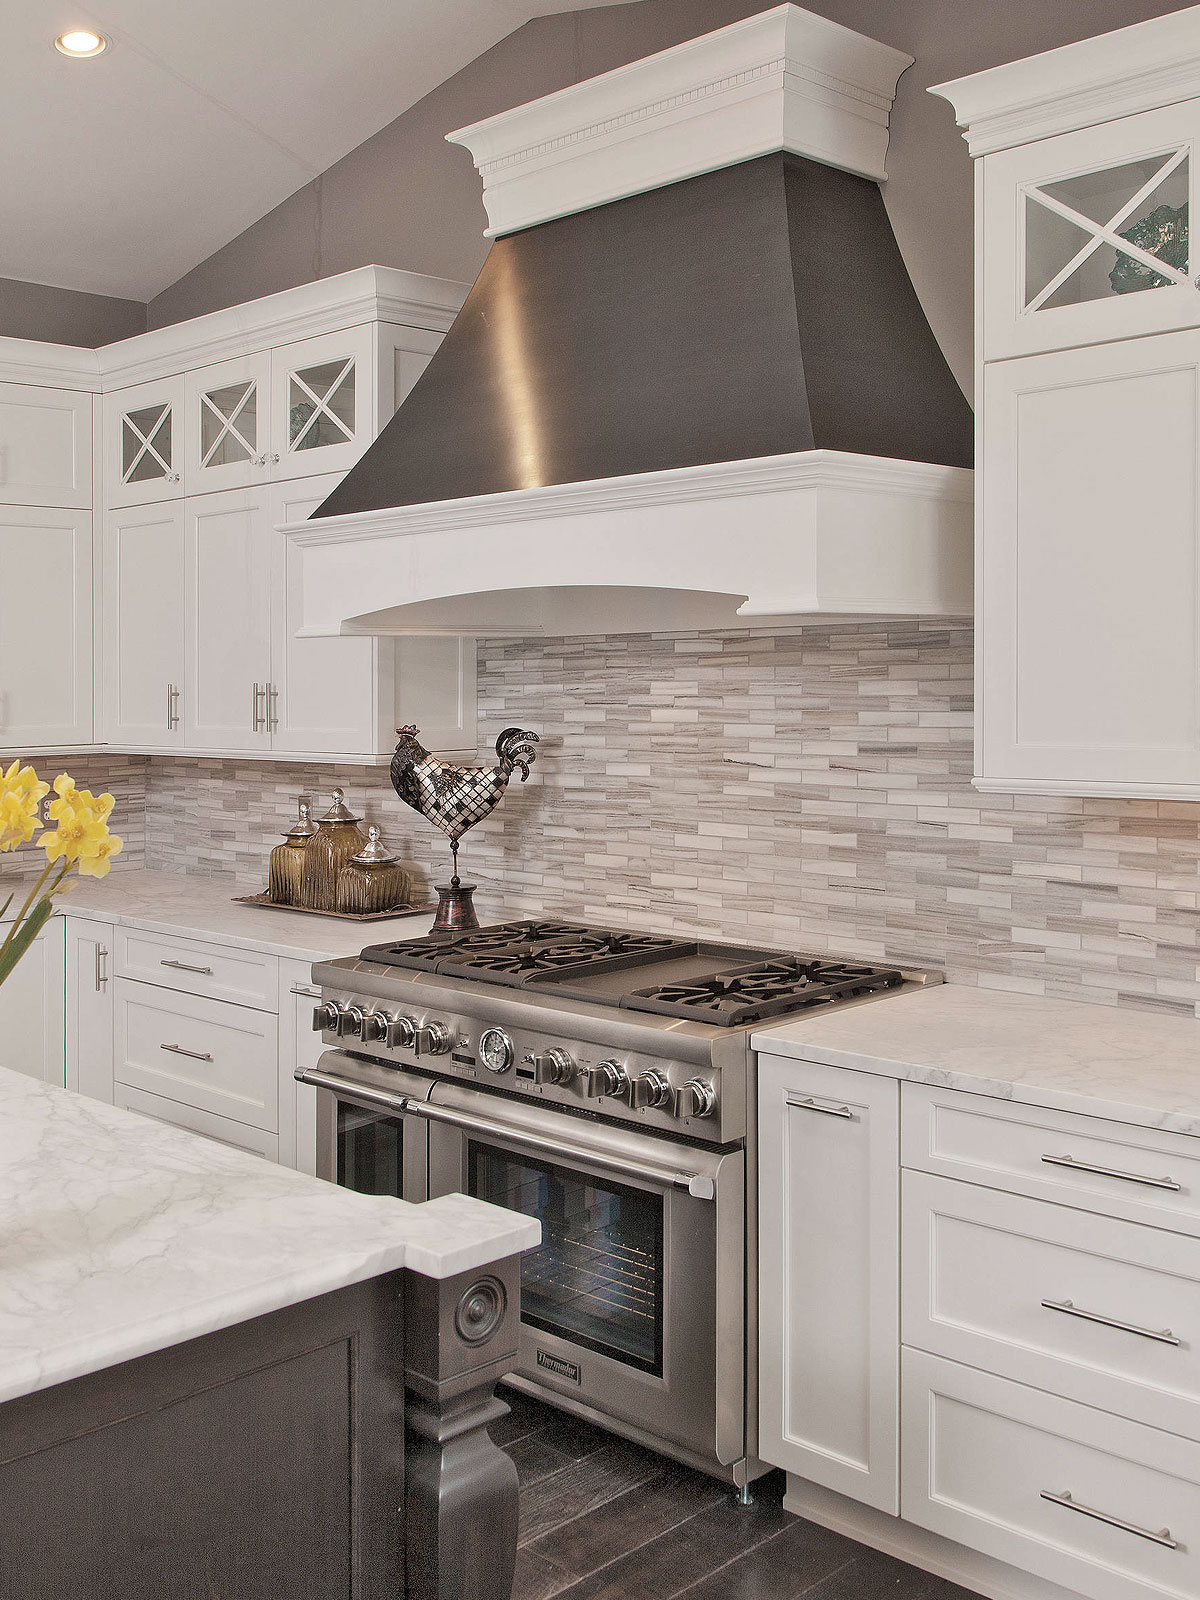 - 93+ Gray Backsplash Ideas - ( Contemporary Or Stylish? ) Gray Trends!